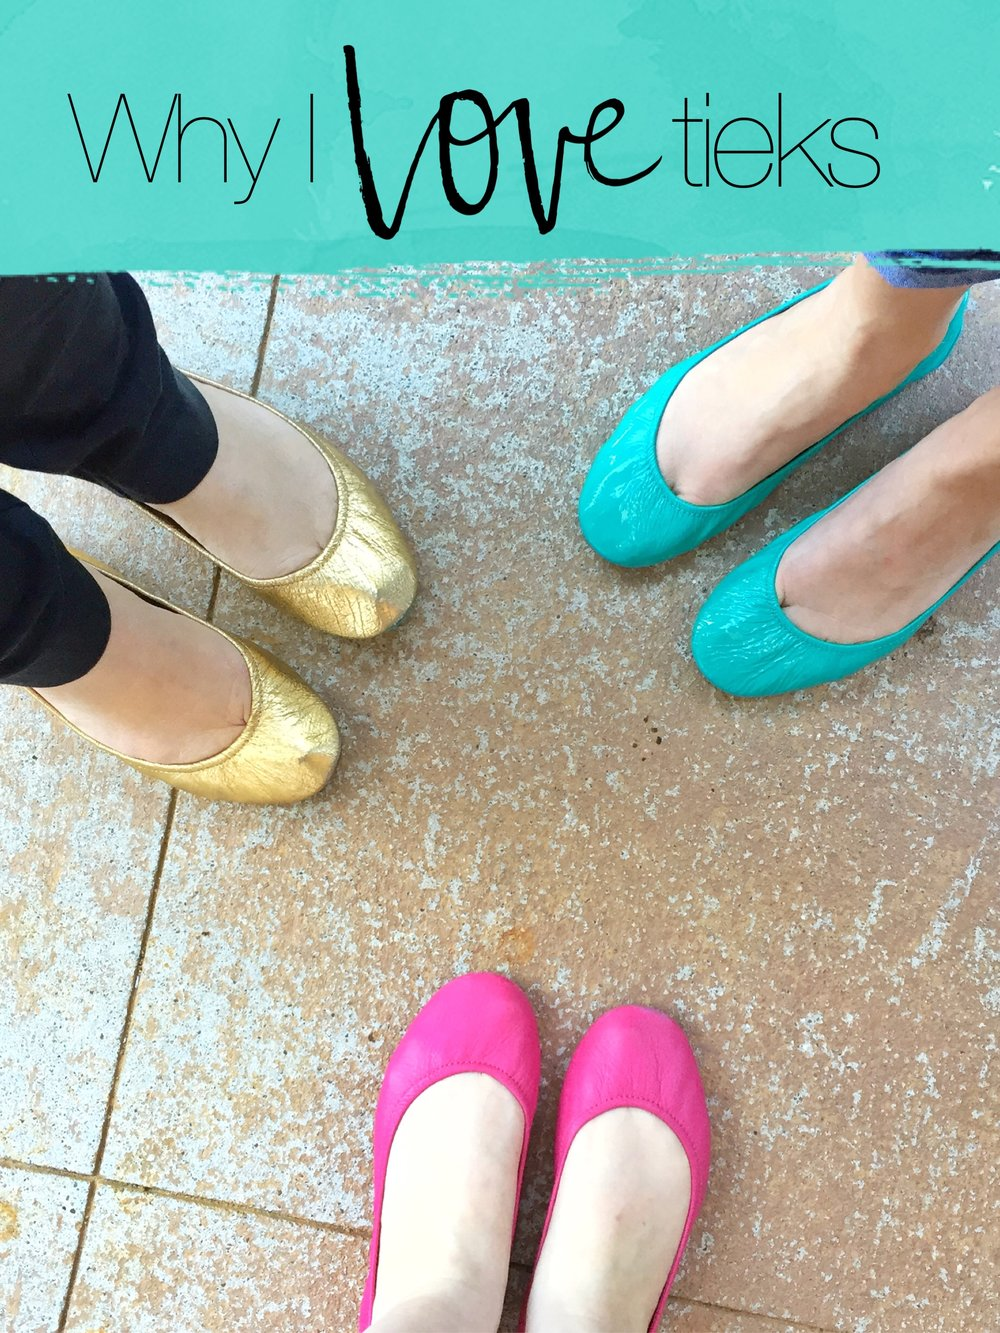 996a6165fb Tieks ballet flats have been dubbed the most stylish